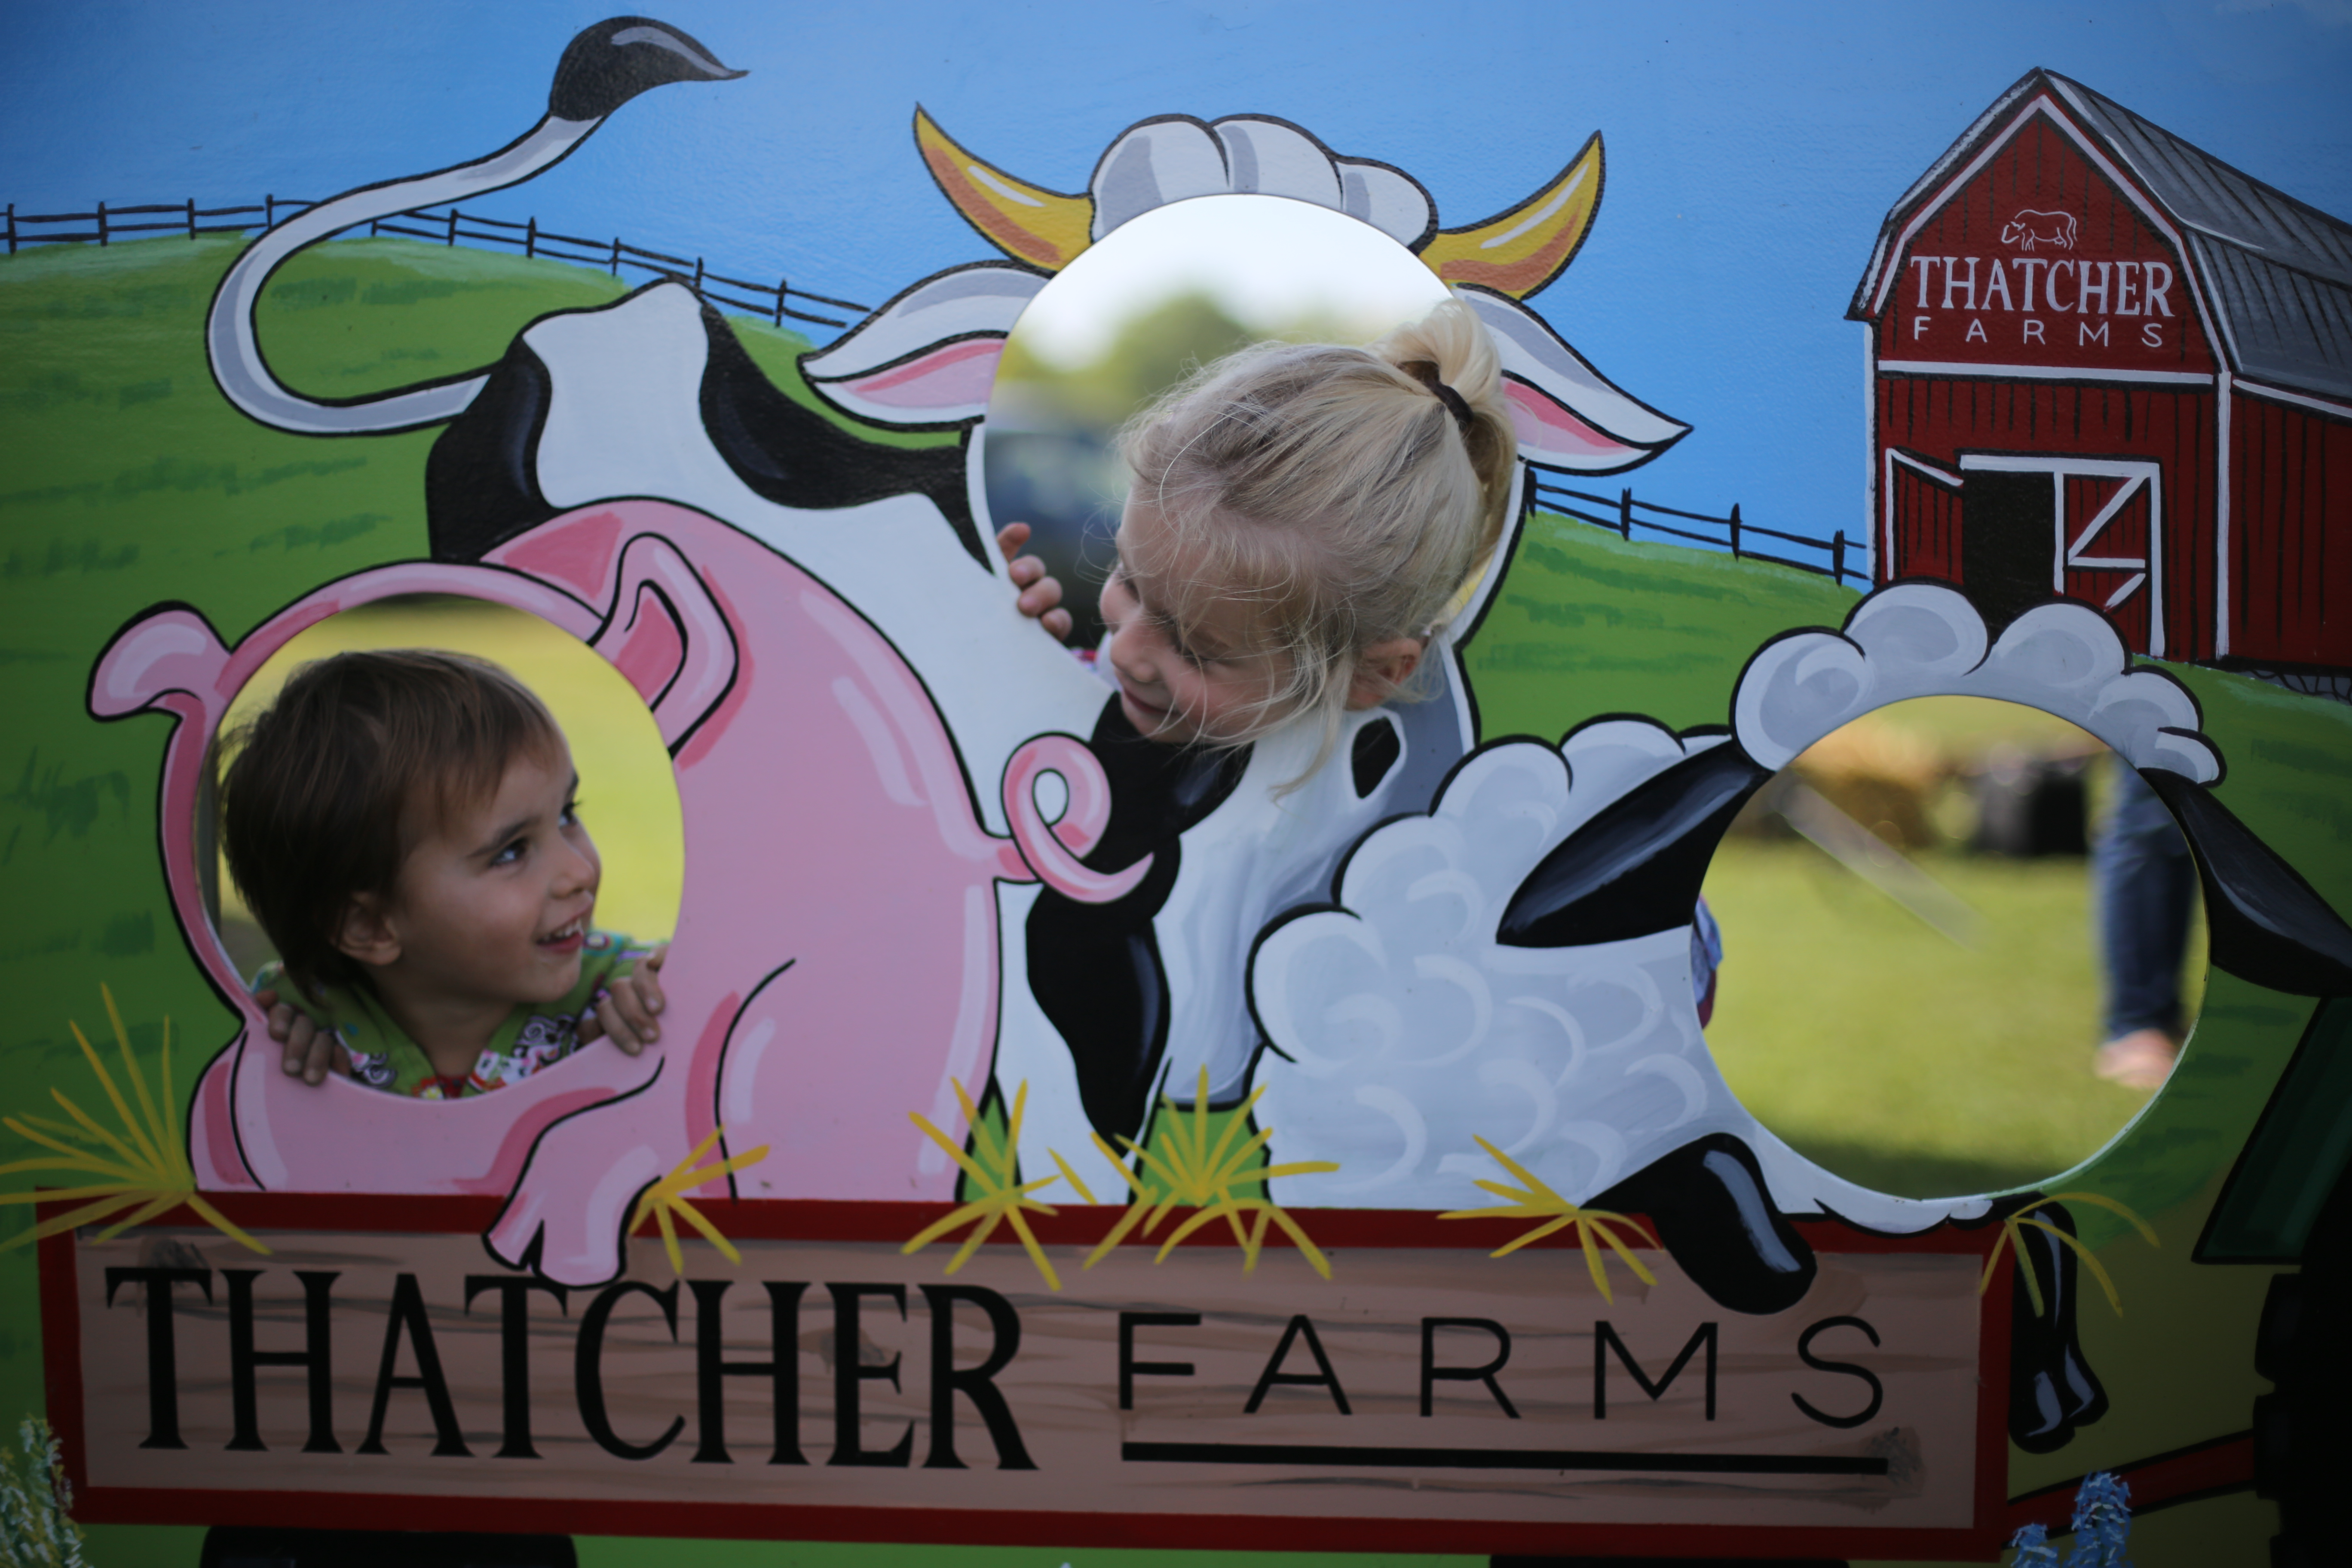 Full size lightbox of Thatcher Farms Butcher Shop, Bakery and Farm Market image 0